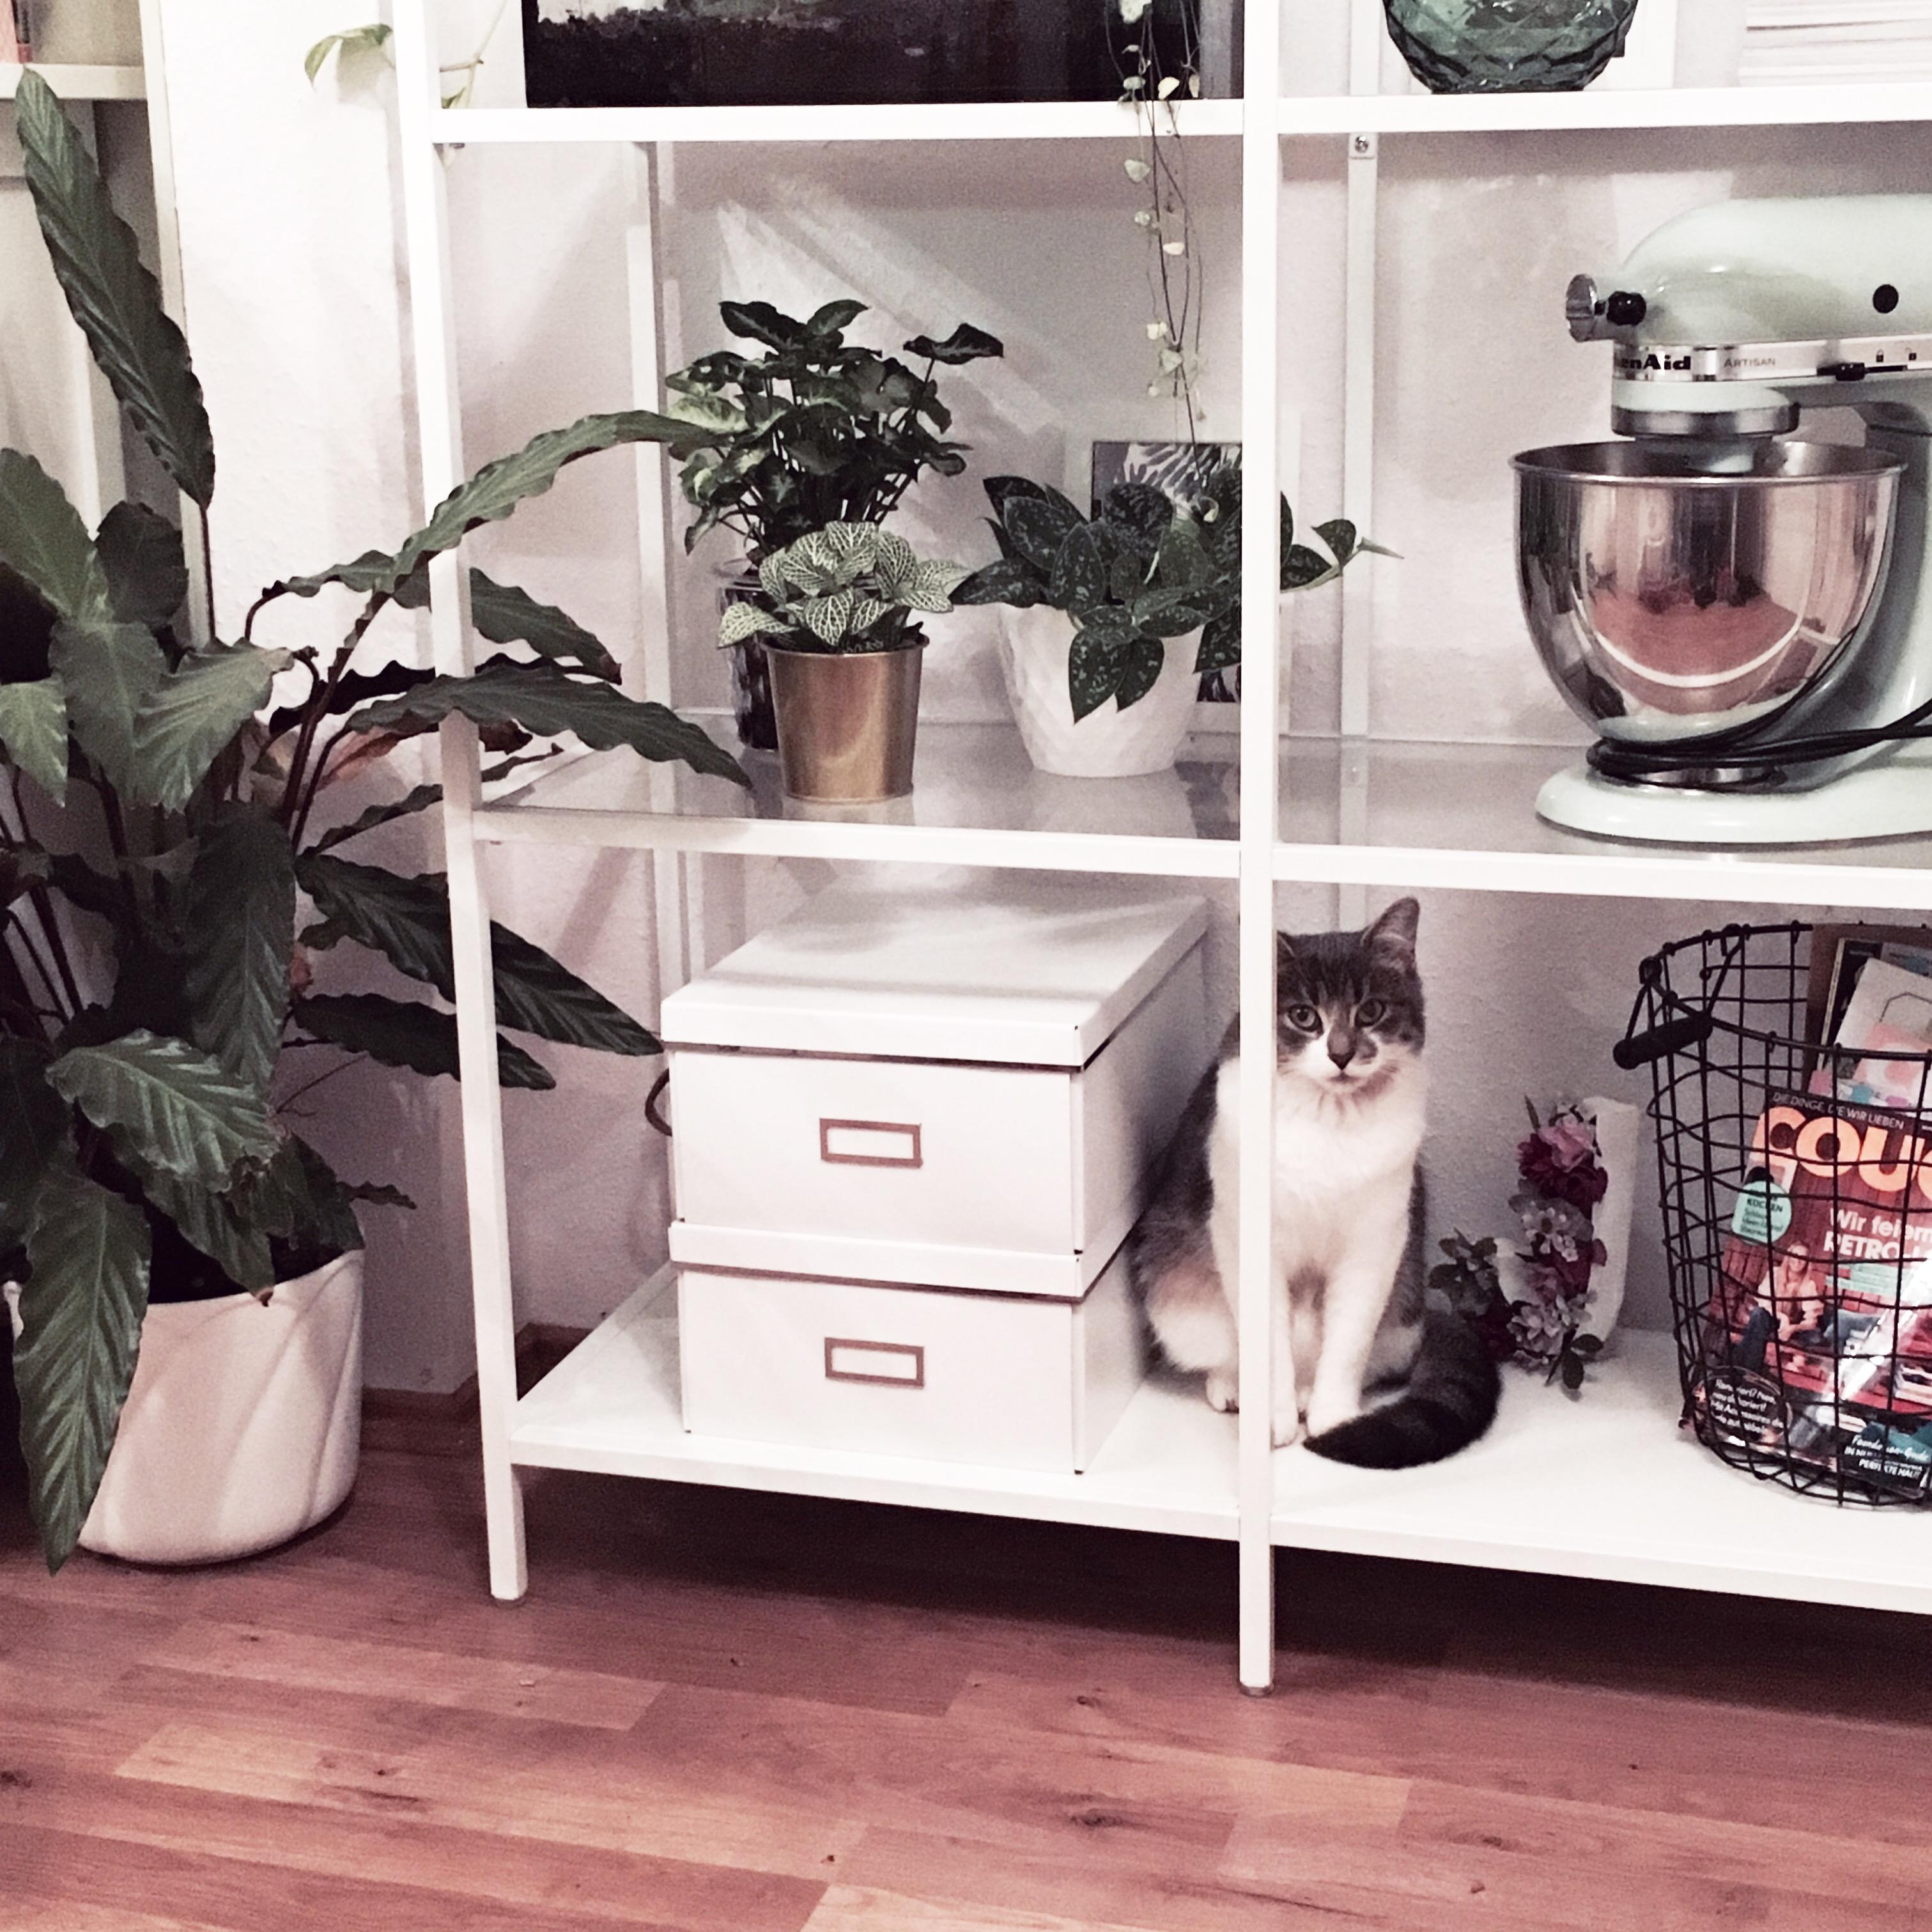 #interior #ikea #cat #interiordesign #kitchenaid